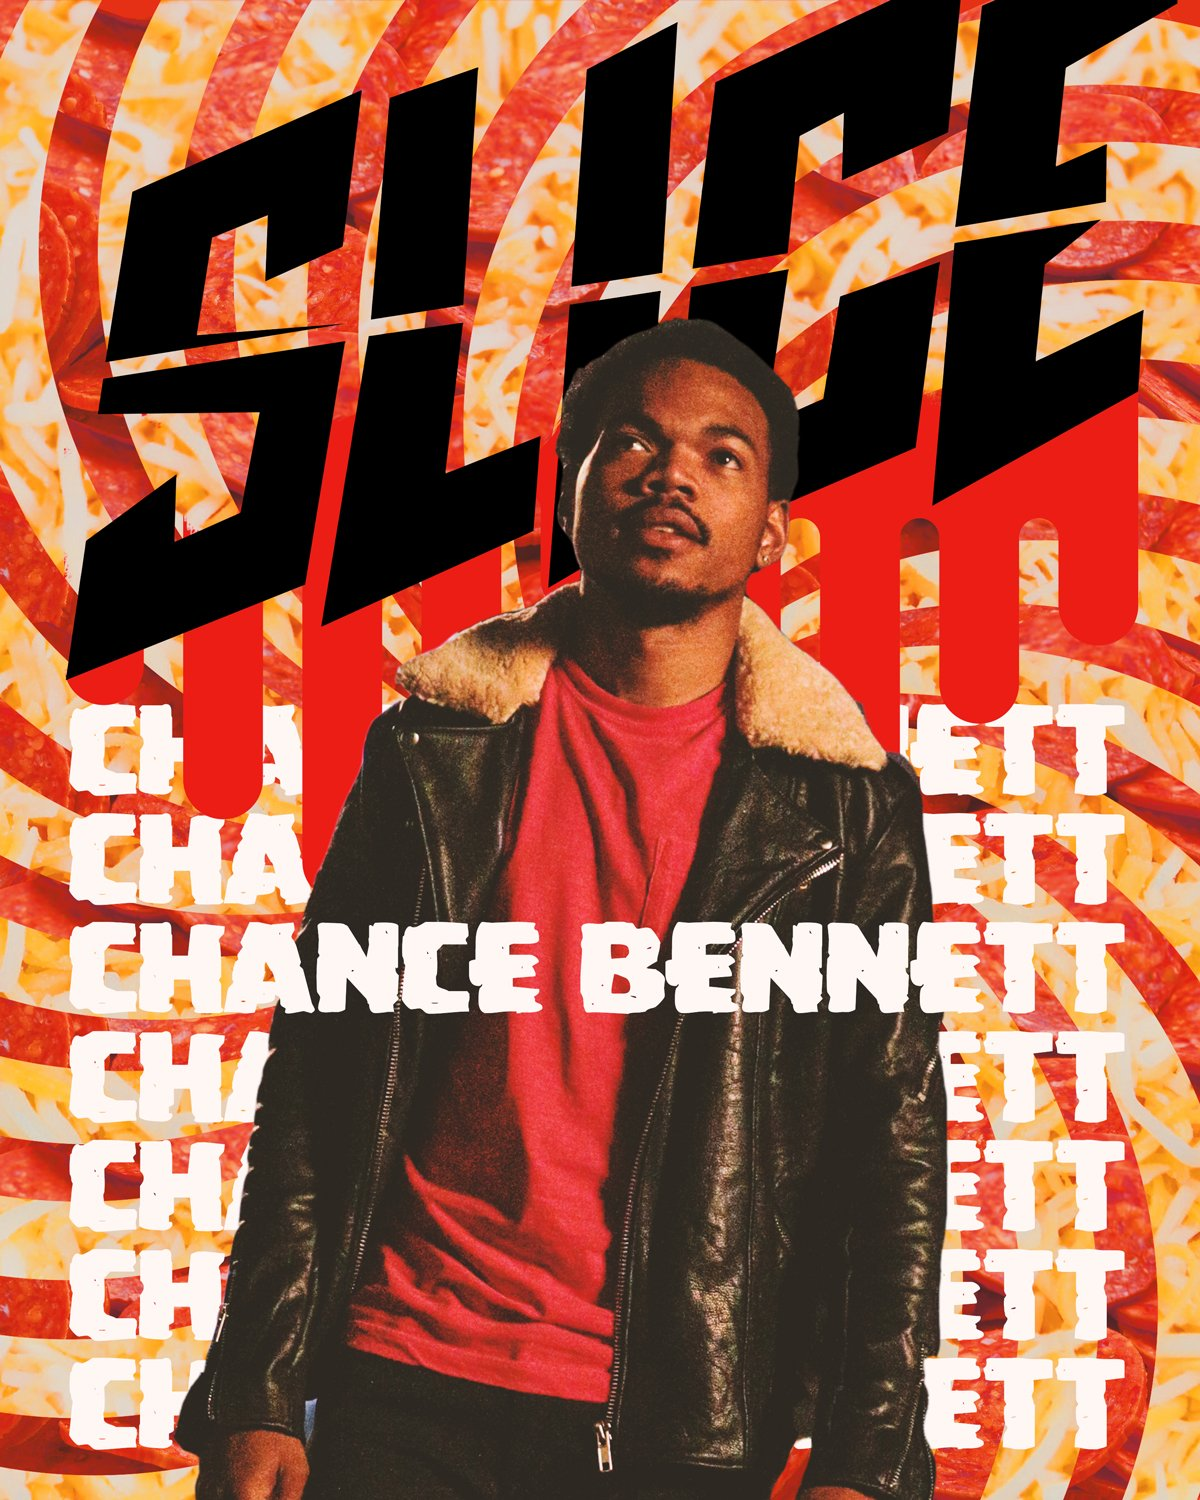 [US🇺🇸]Chance the Rapper – 'Slice'(Movie)